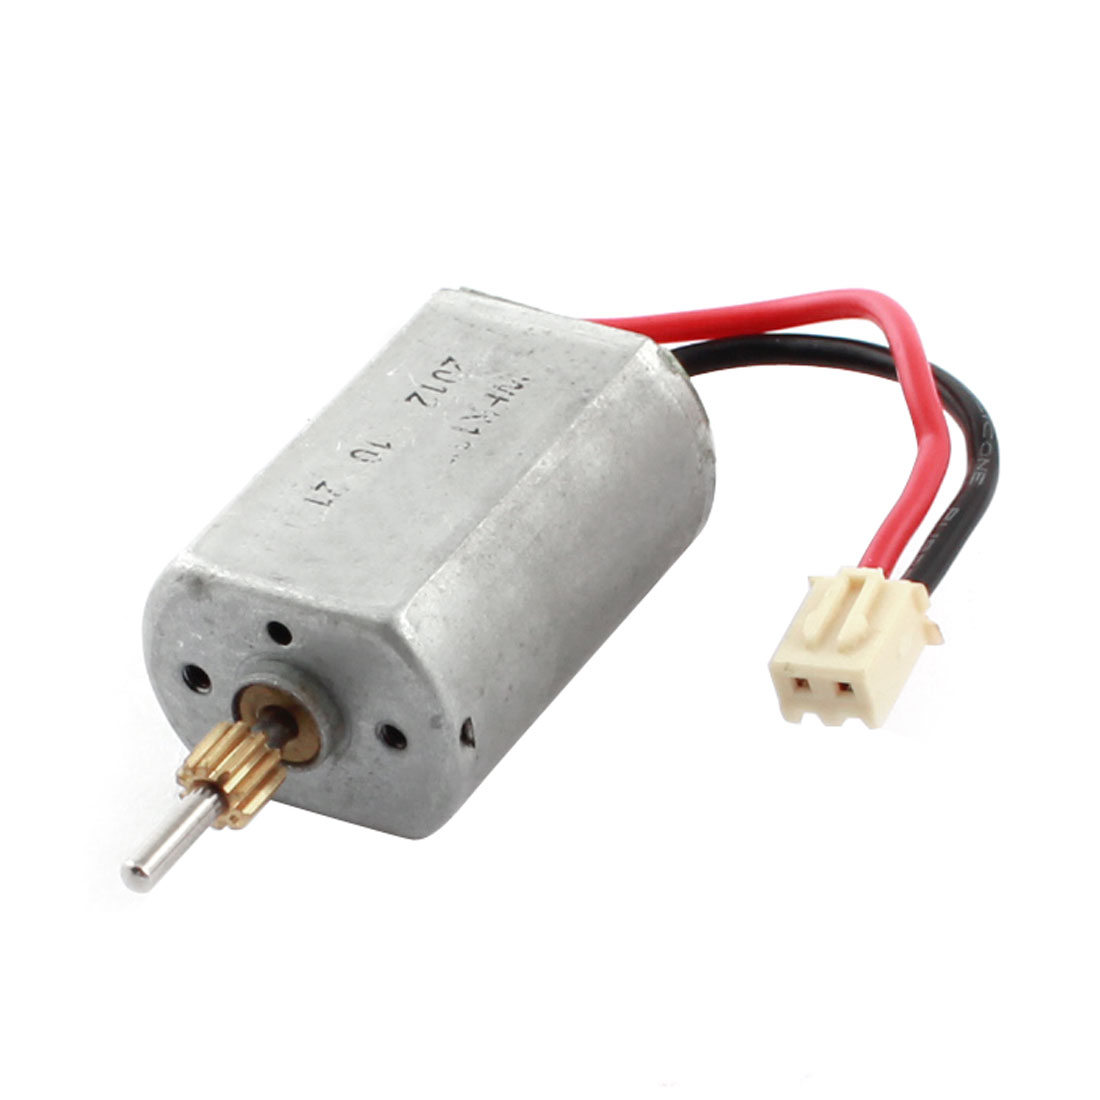 8088-42/43 RC Helicopter Model Toys Parts Front Motor 3.7V 45000RPM